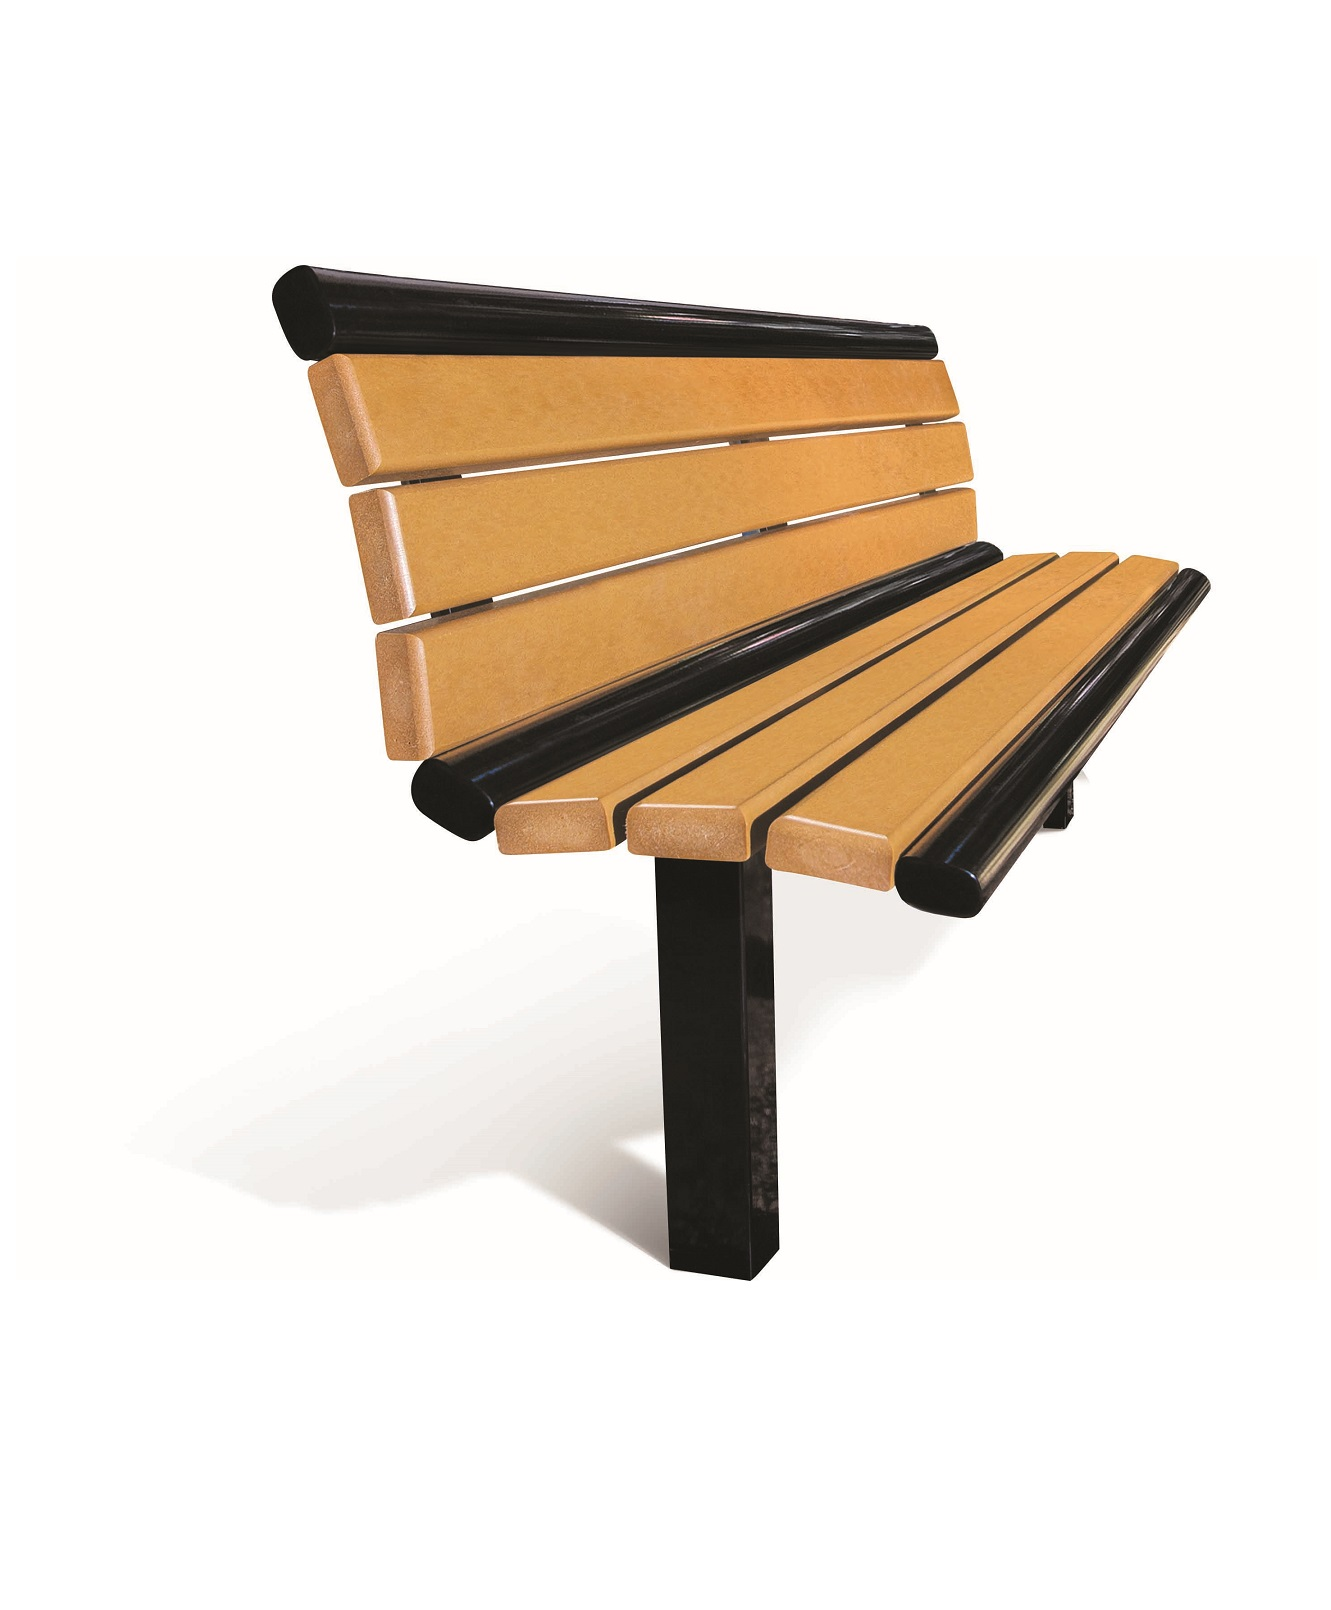 Commercial Benches - Park Benches - Outdoor Benches - Park Warehouse